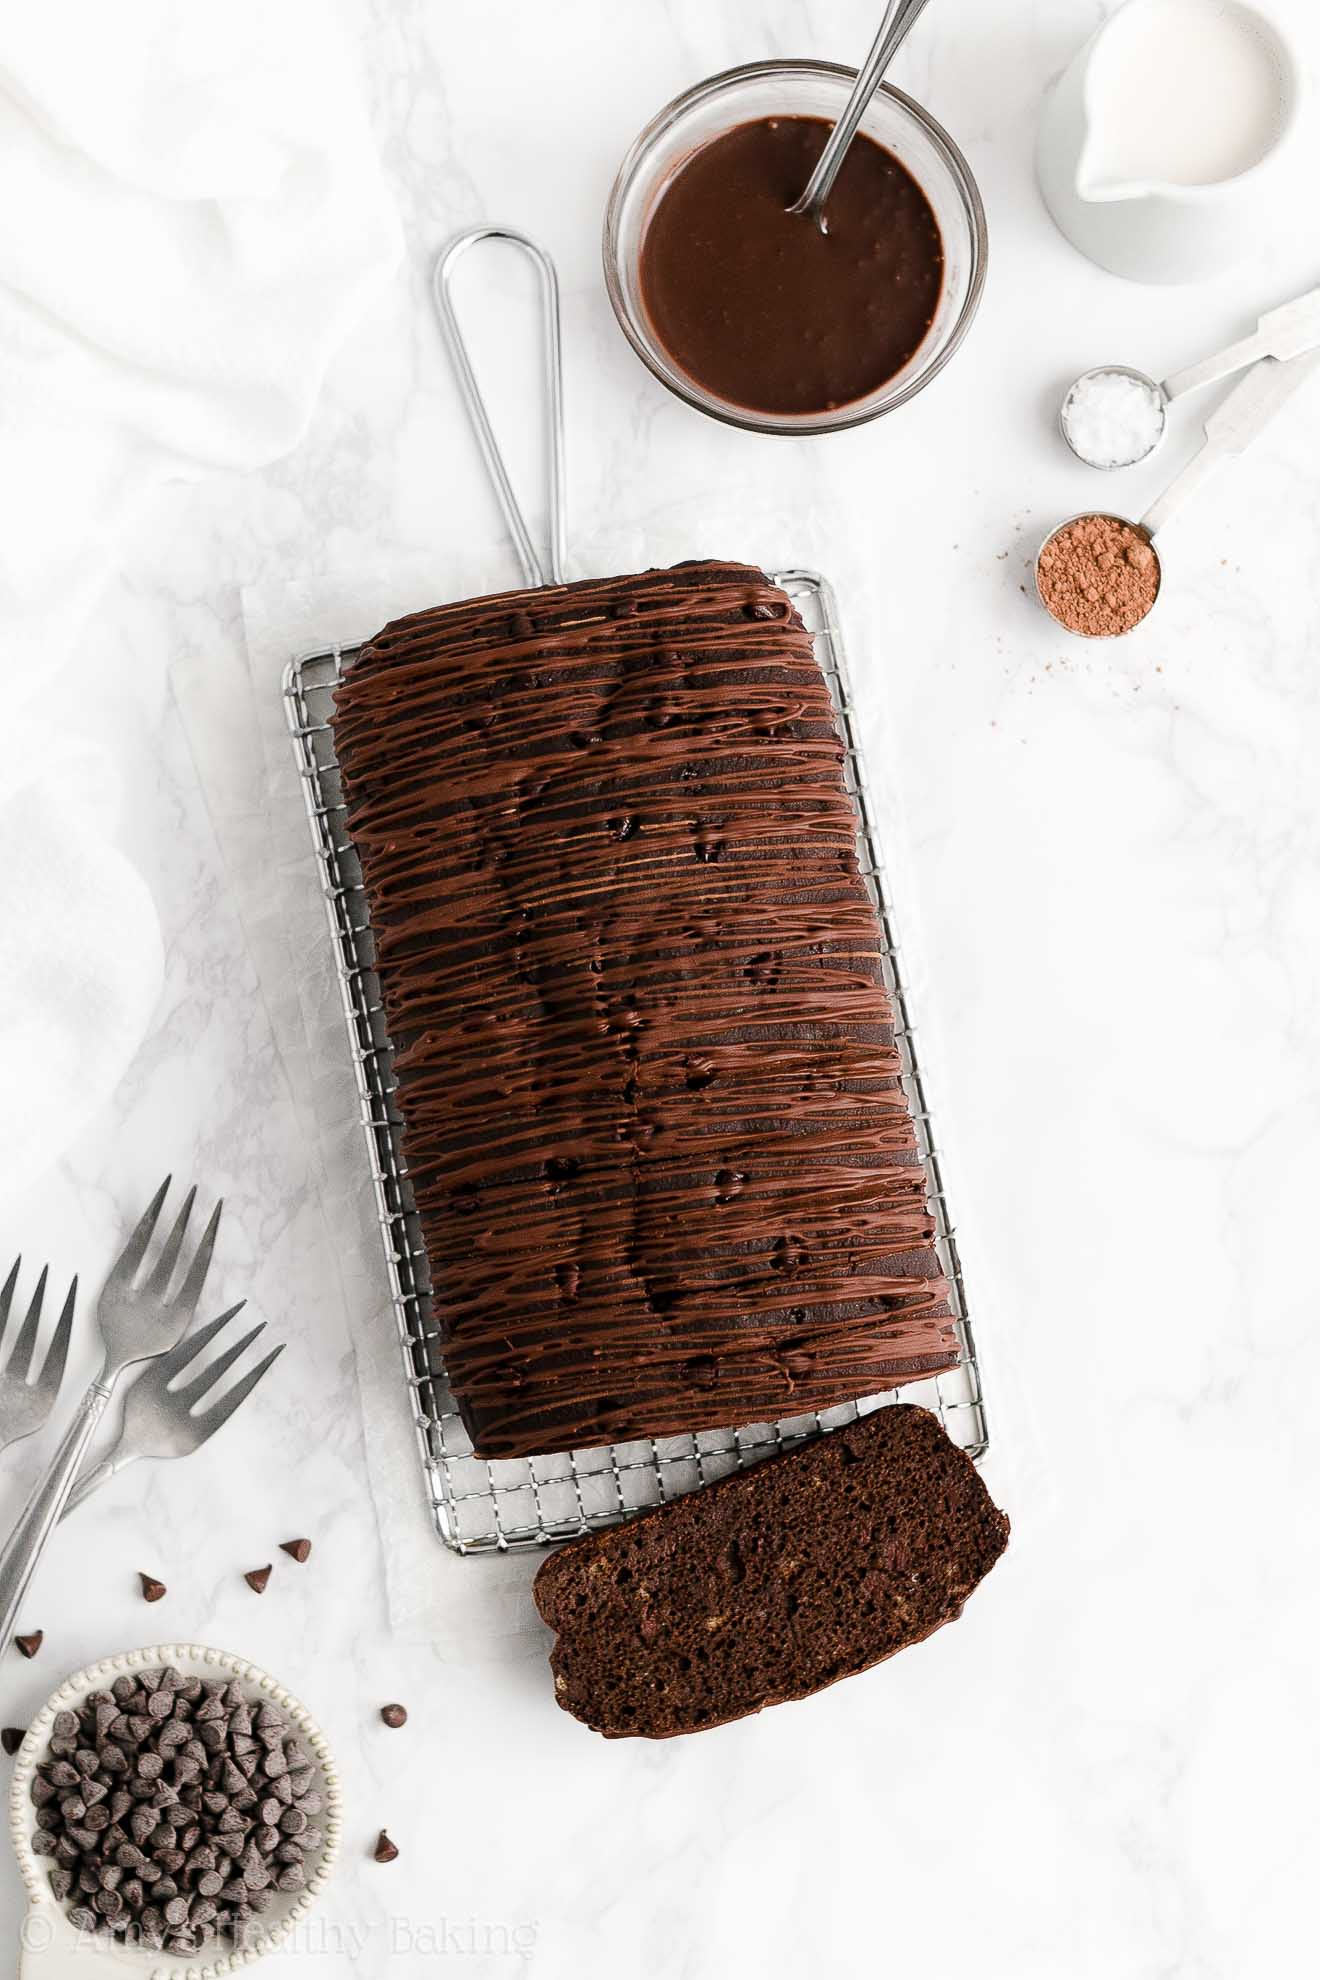 BEST EVER Healthy Gluten Free Low Sugar Greek Yogurt Chocolate Banana Bread